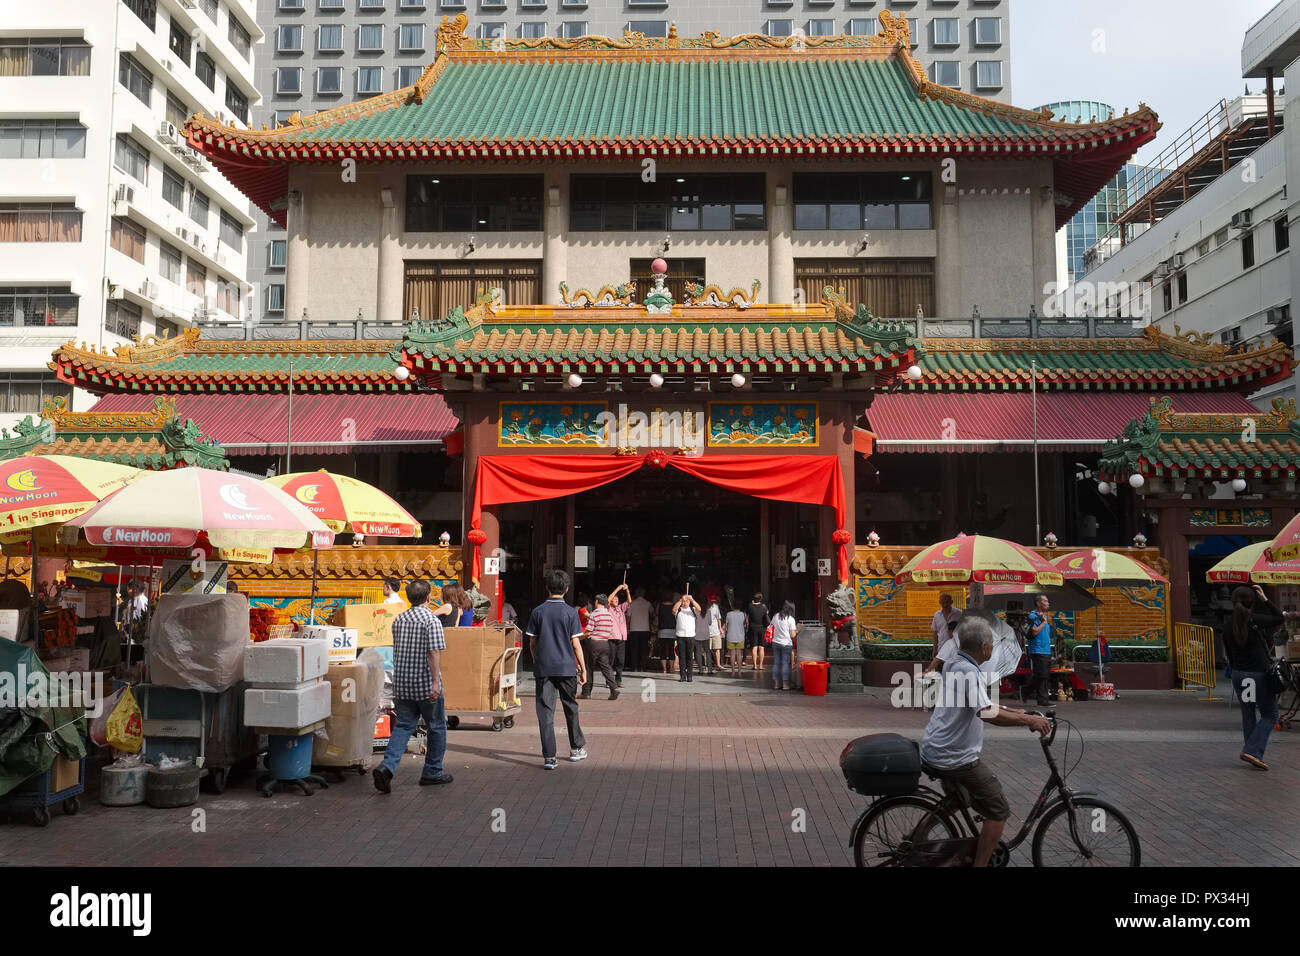 Kwan Im Thong Hood Cho Temple, Waterloo St., Bugis, Singapore, with many shops for religious paraphernalia and vegetarian restaurants in the vicinity - Stock Image